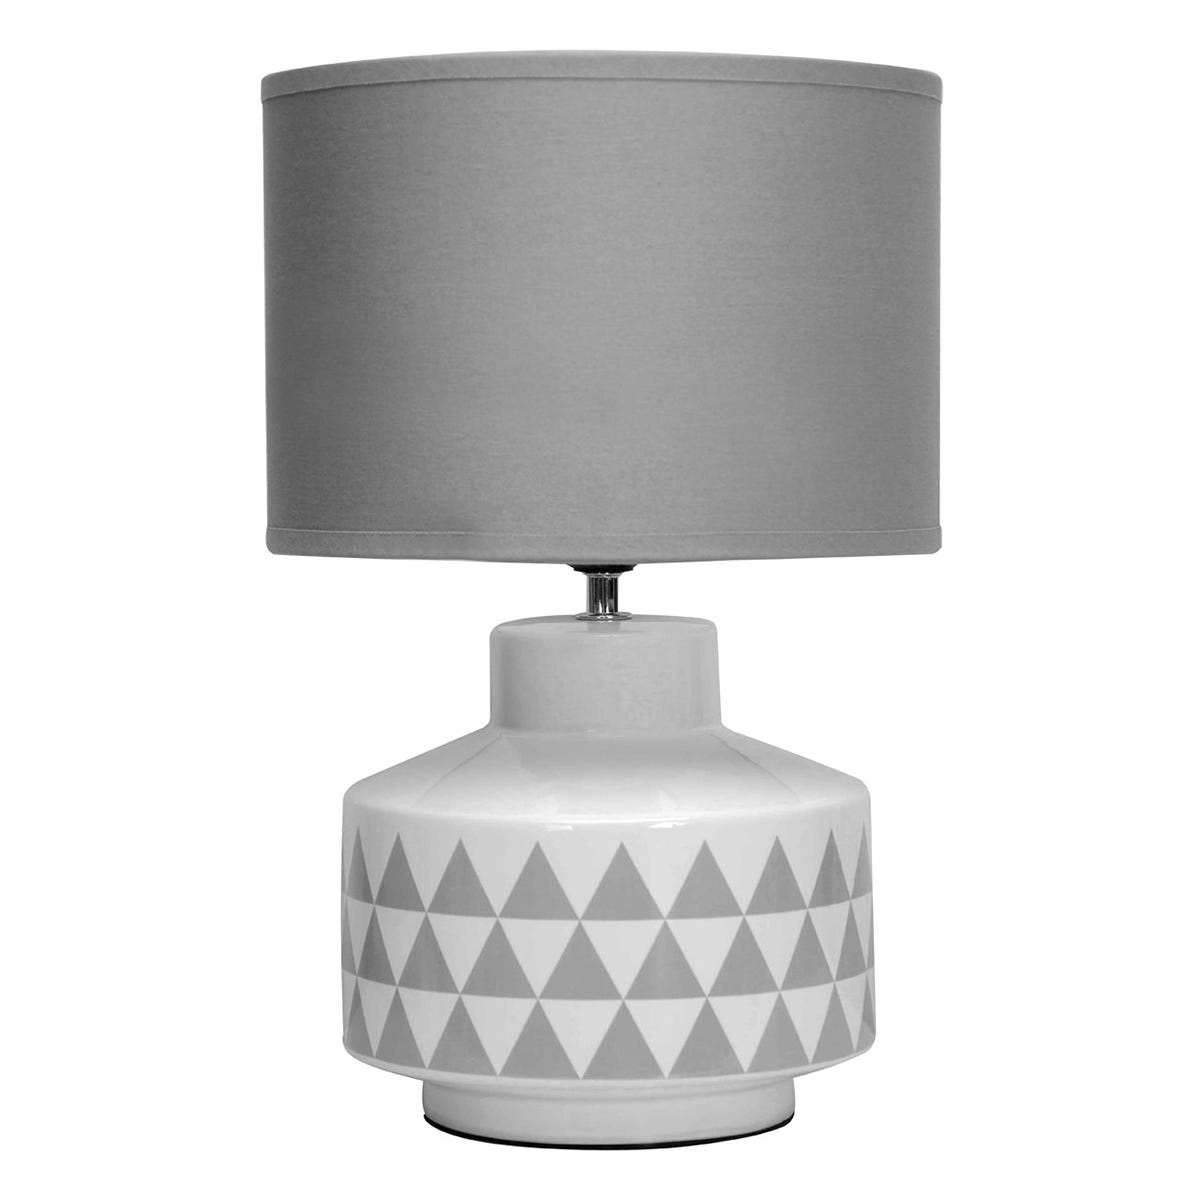 Premier Housewares Wylie Table Lamp in White Ceramic with Grey Fabric Shade